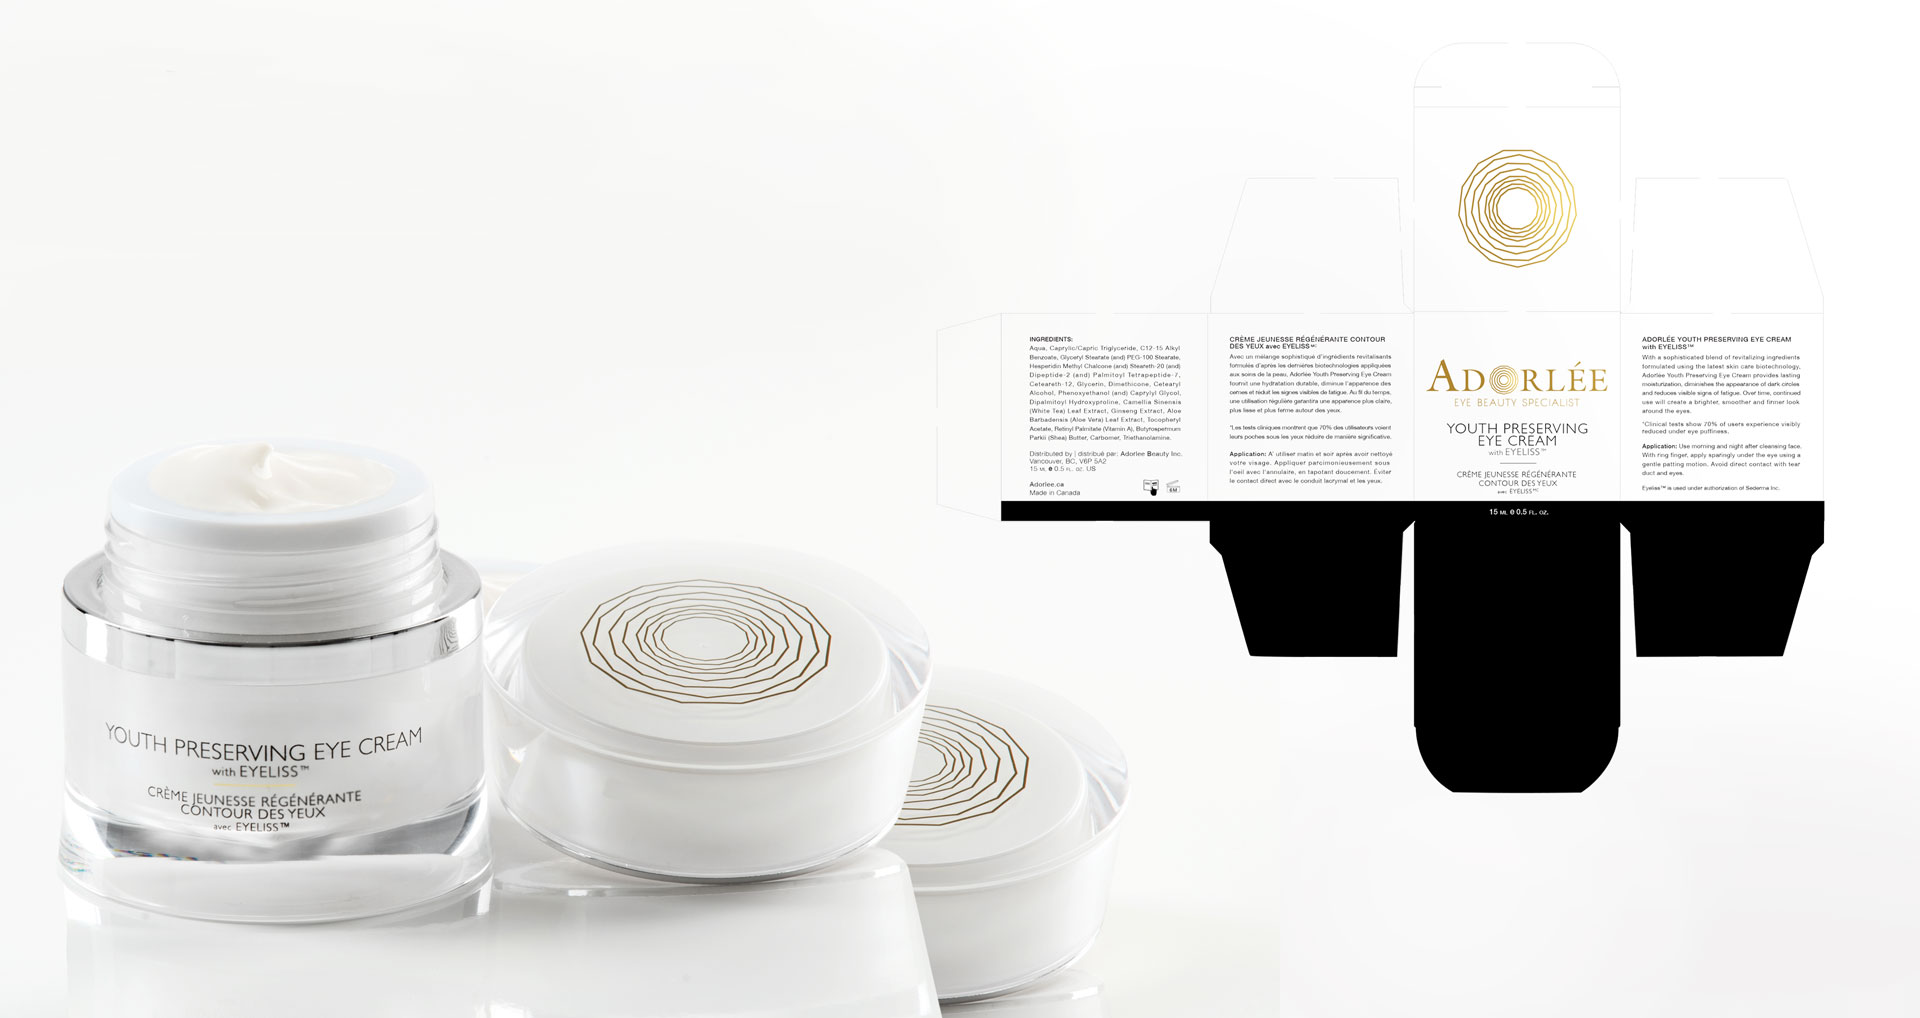 Adorlee product development research package design